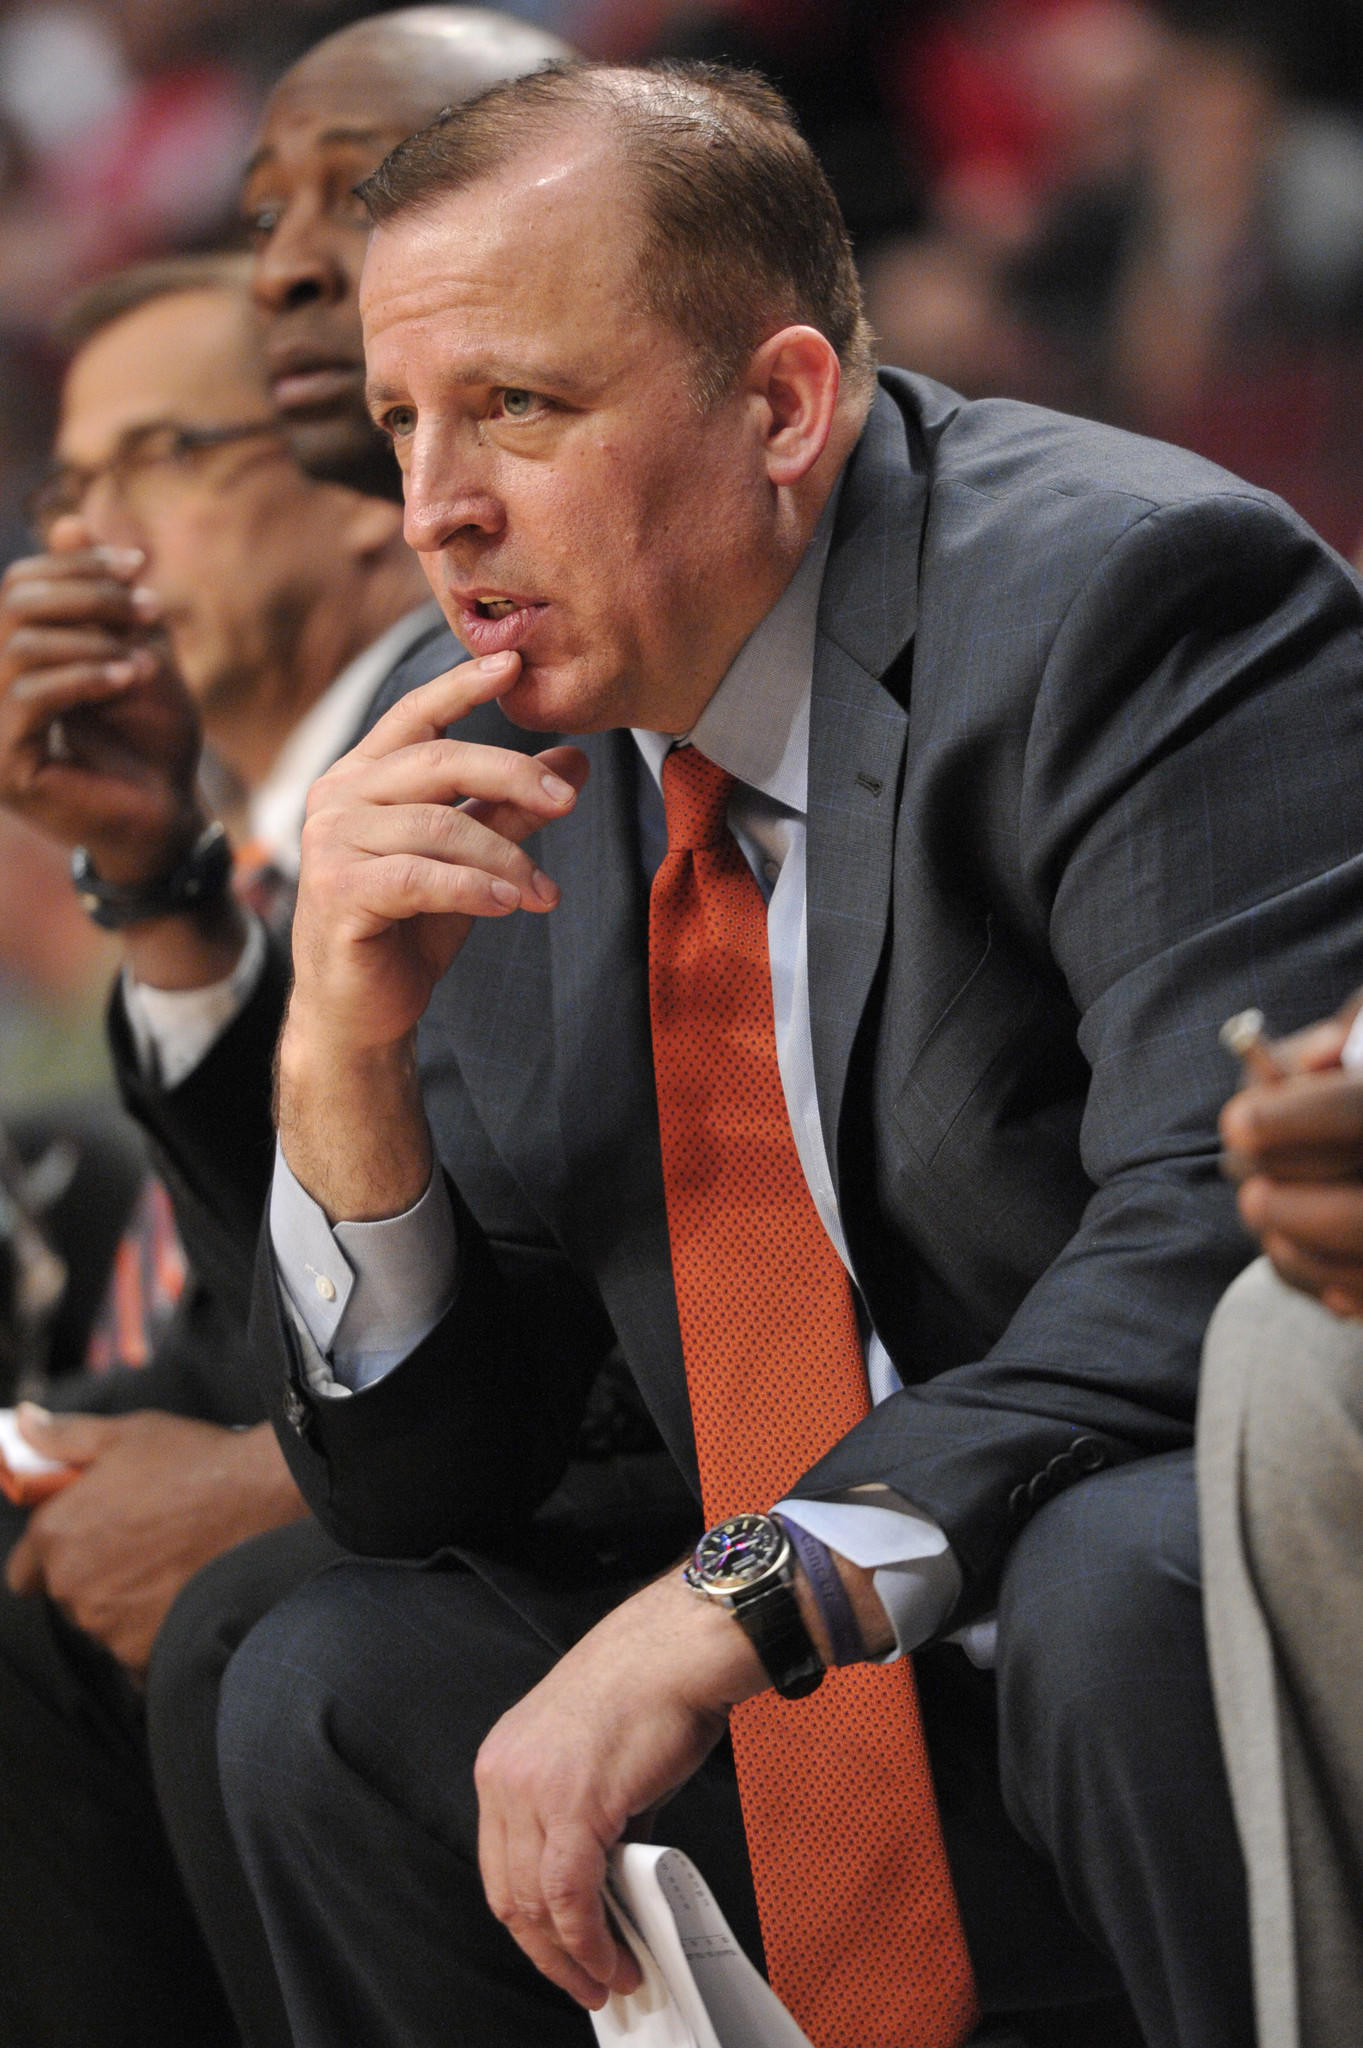 Chicago Bulls head coach Tom Thibodeau during the second half against the Golden State Warriors at the United Center. The Bulls beat the Warriors 103-83.